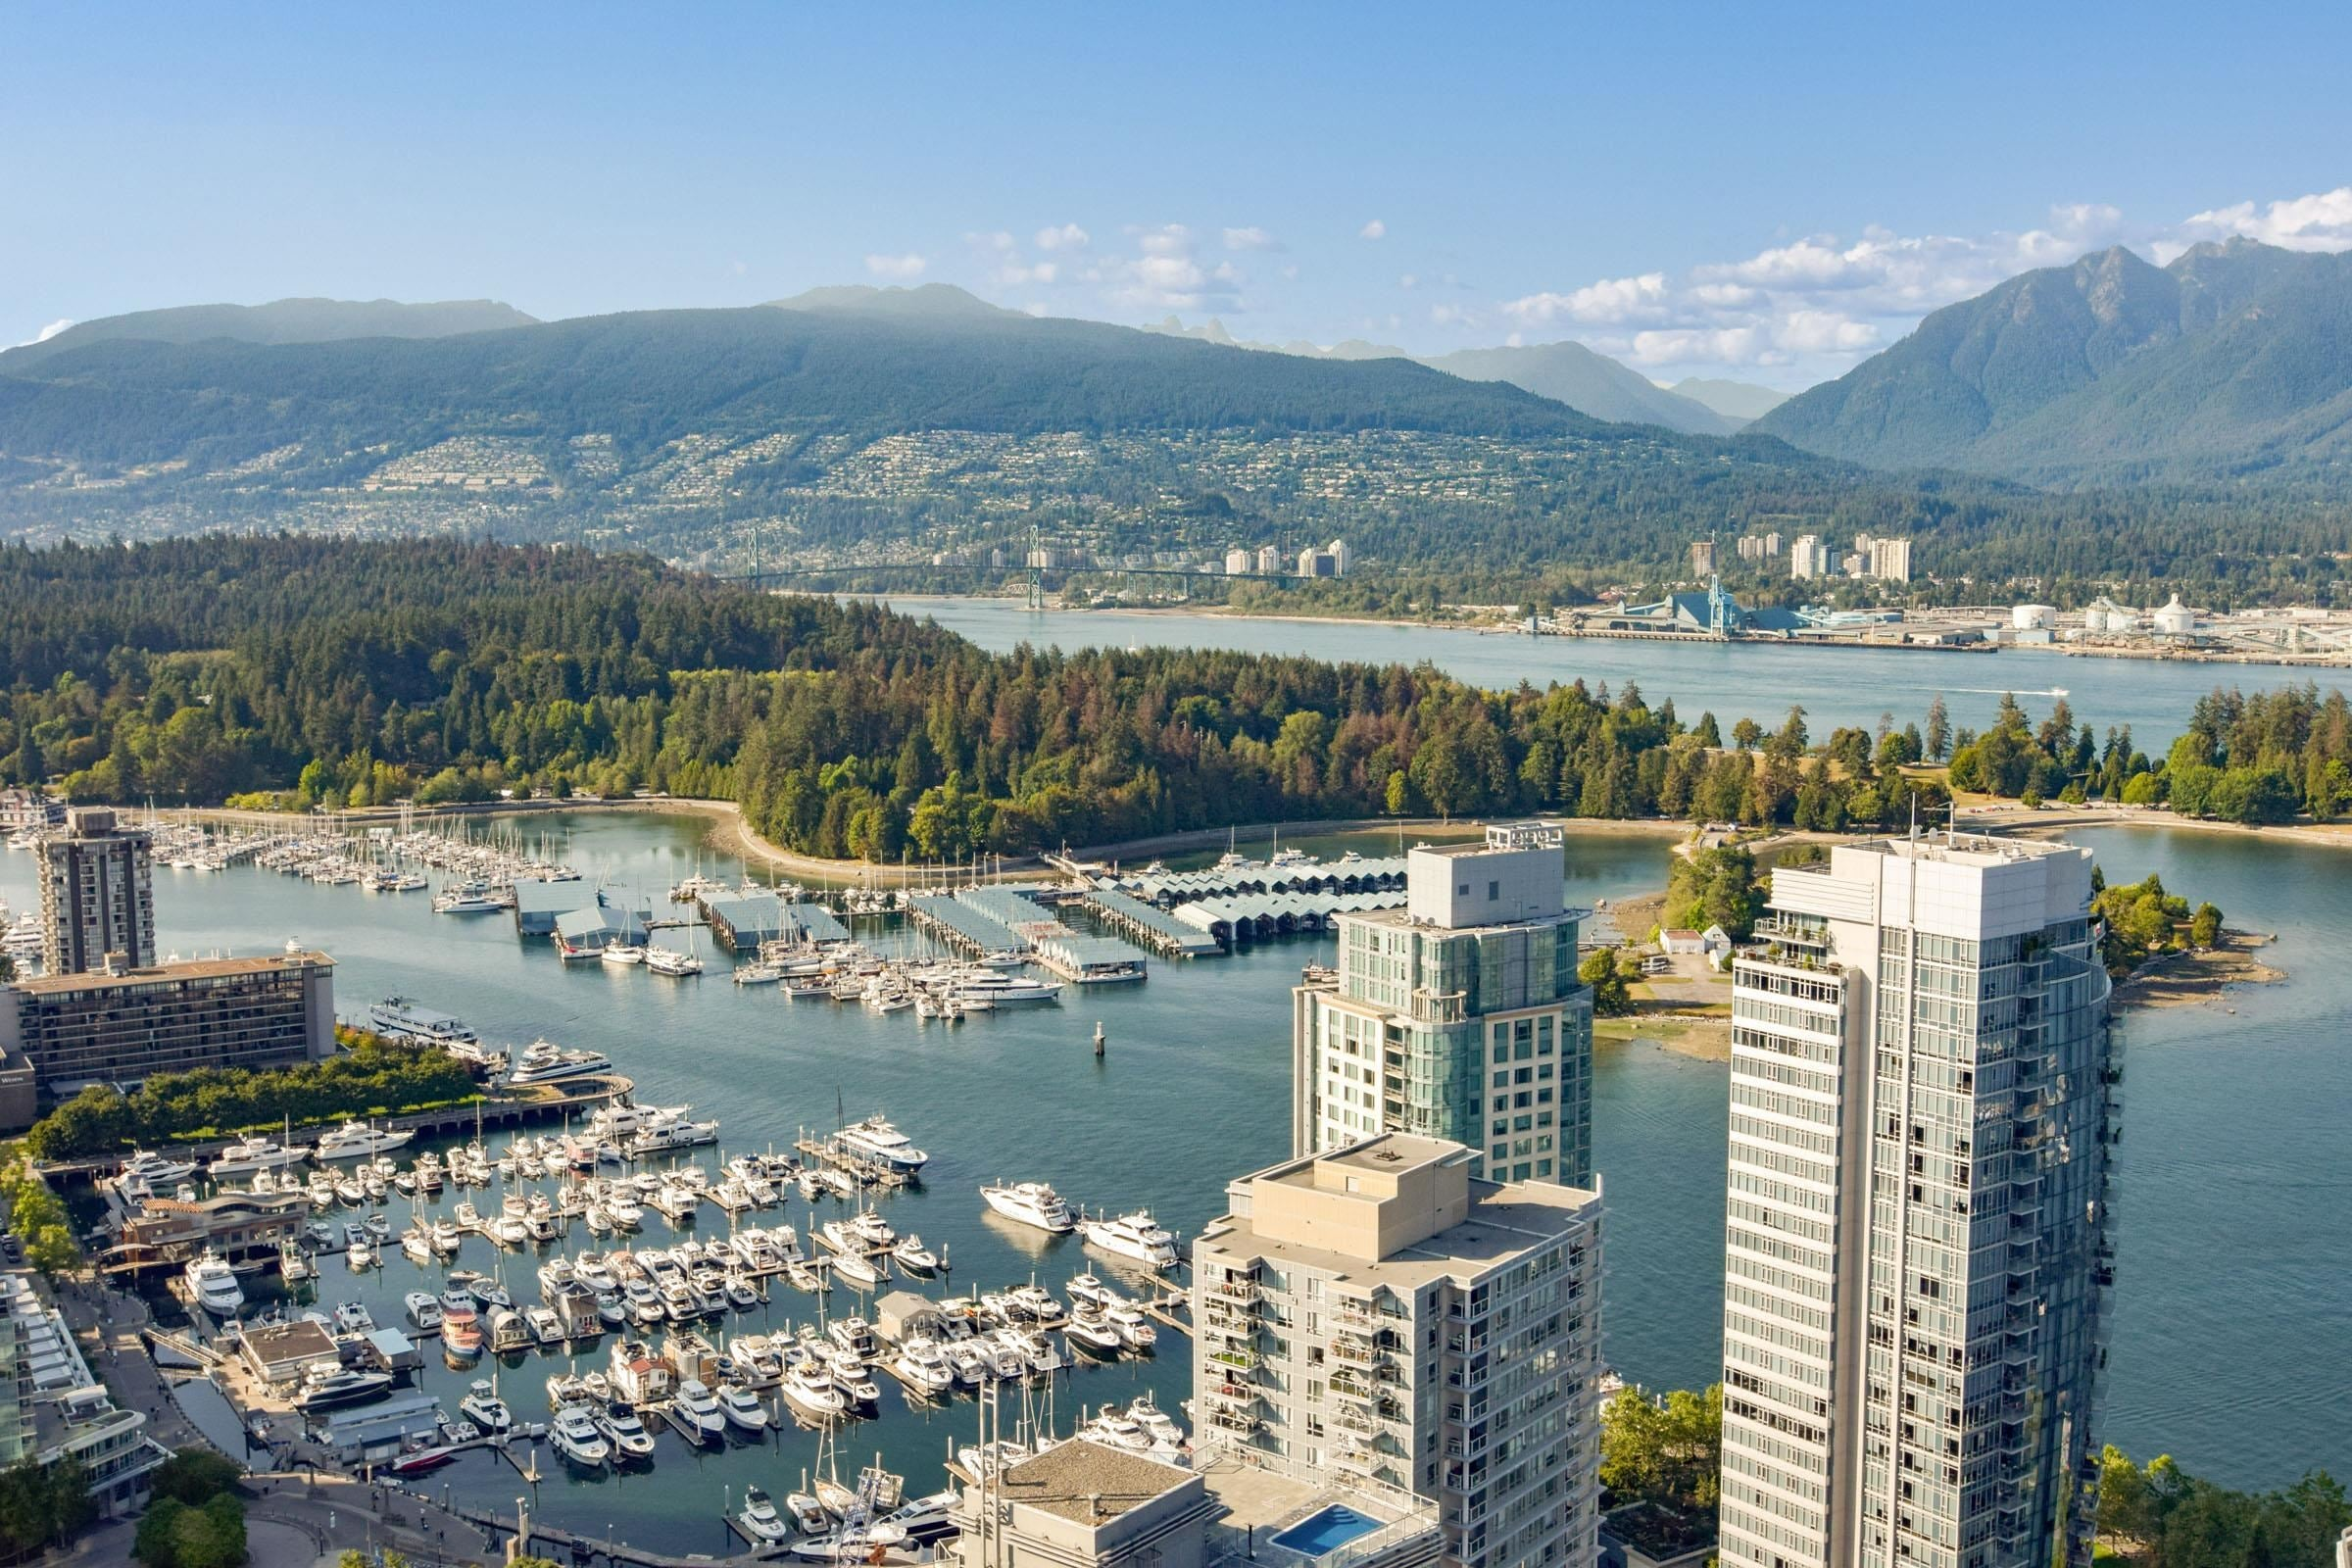 3401 1189 MELVILLE STREET - Coal Harbour Apartment/Condo for sale, 3 Bedrooms (R2611685) - #1